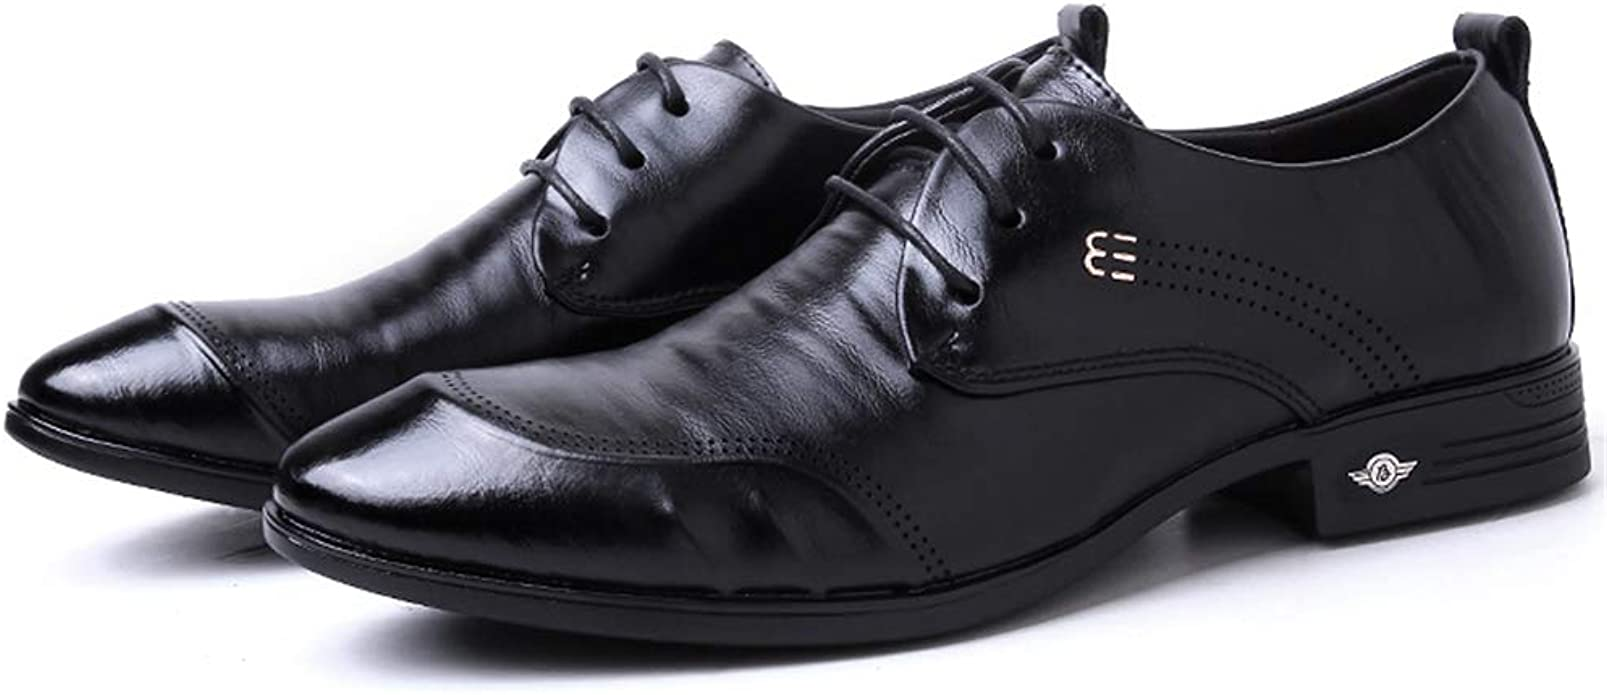 Hilotu Mens Oxford Dress Shoes Casual Style Grid Lines Comfortable and Low Top Formal Business Shoes